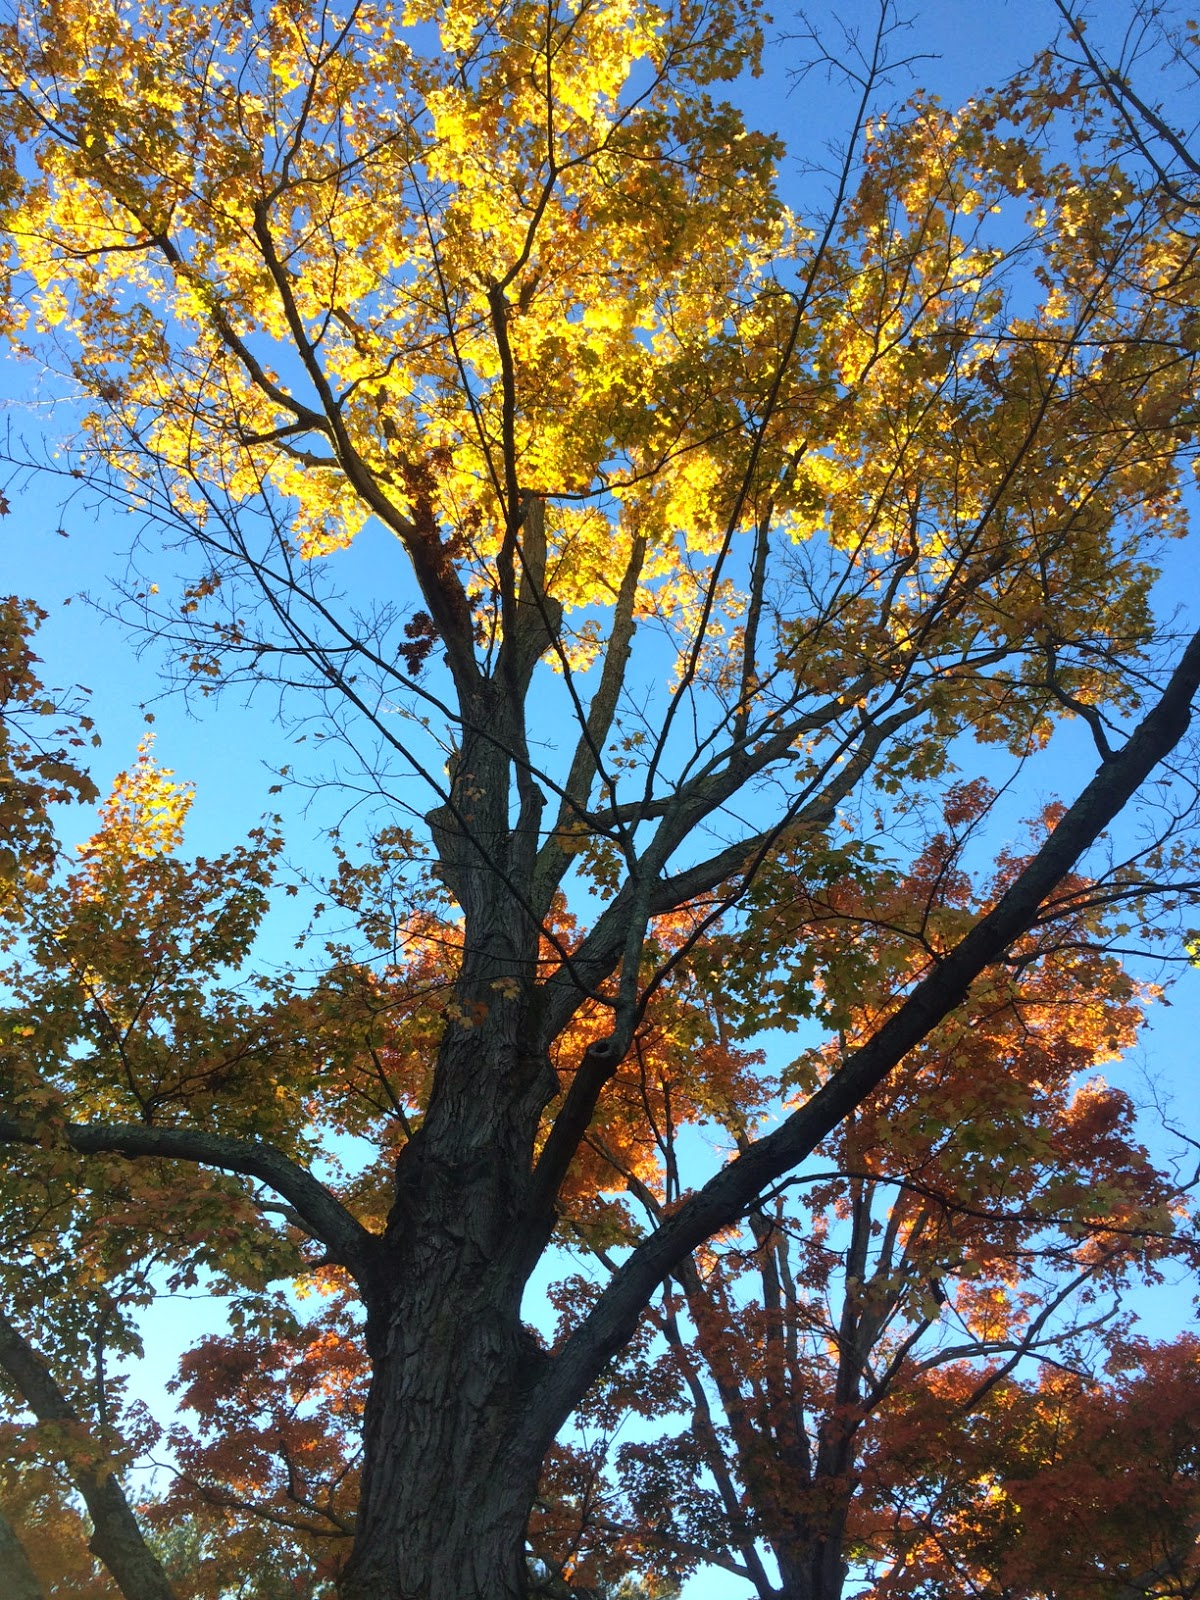 upward view of fall tree of changing yellow and orange leaves with the sun gleaming through